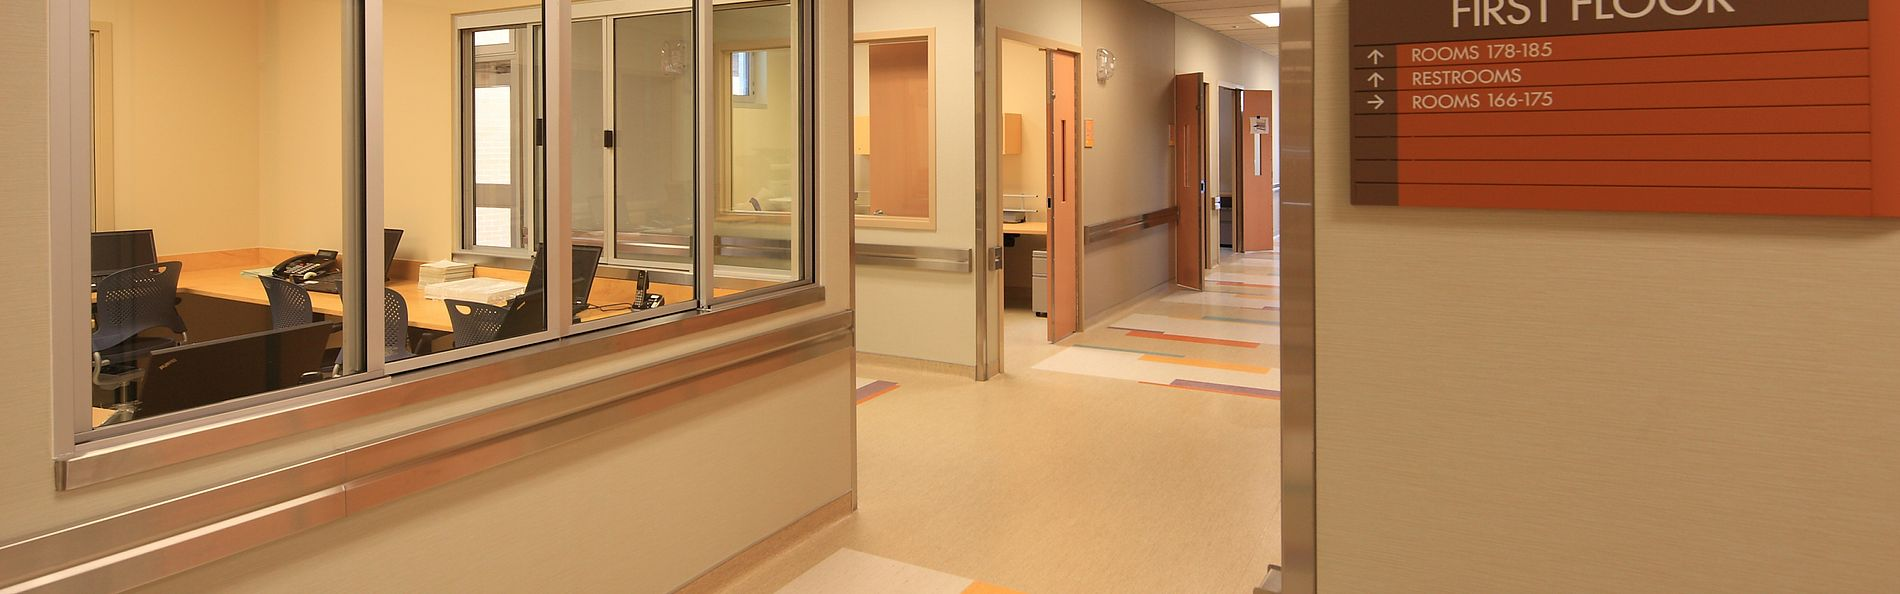 Entry/admissions area for assessment, referral consultation and medically supervised observation on the first floor